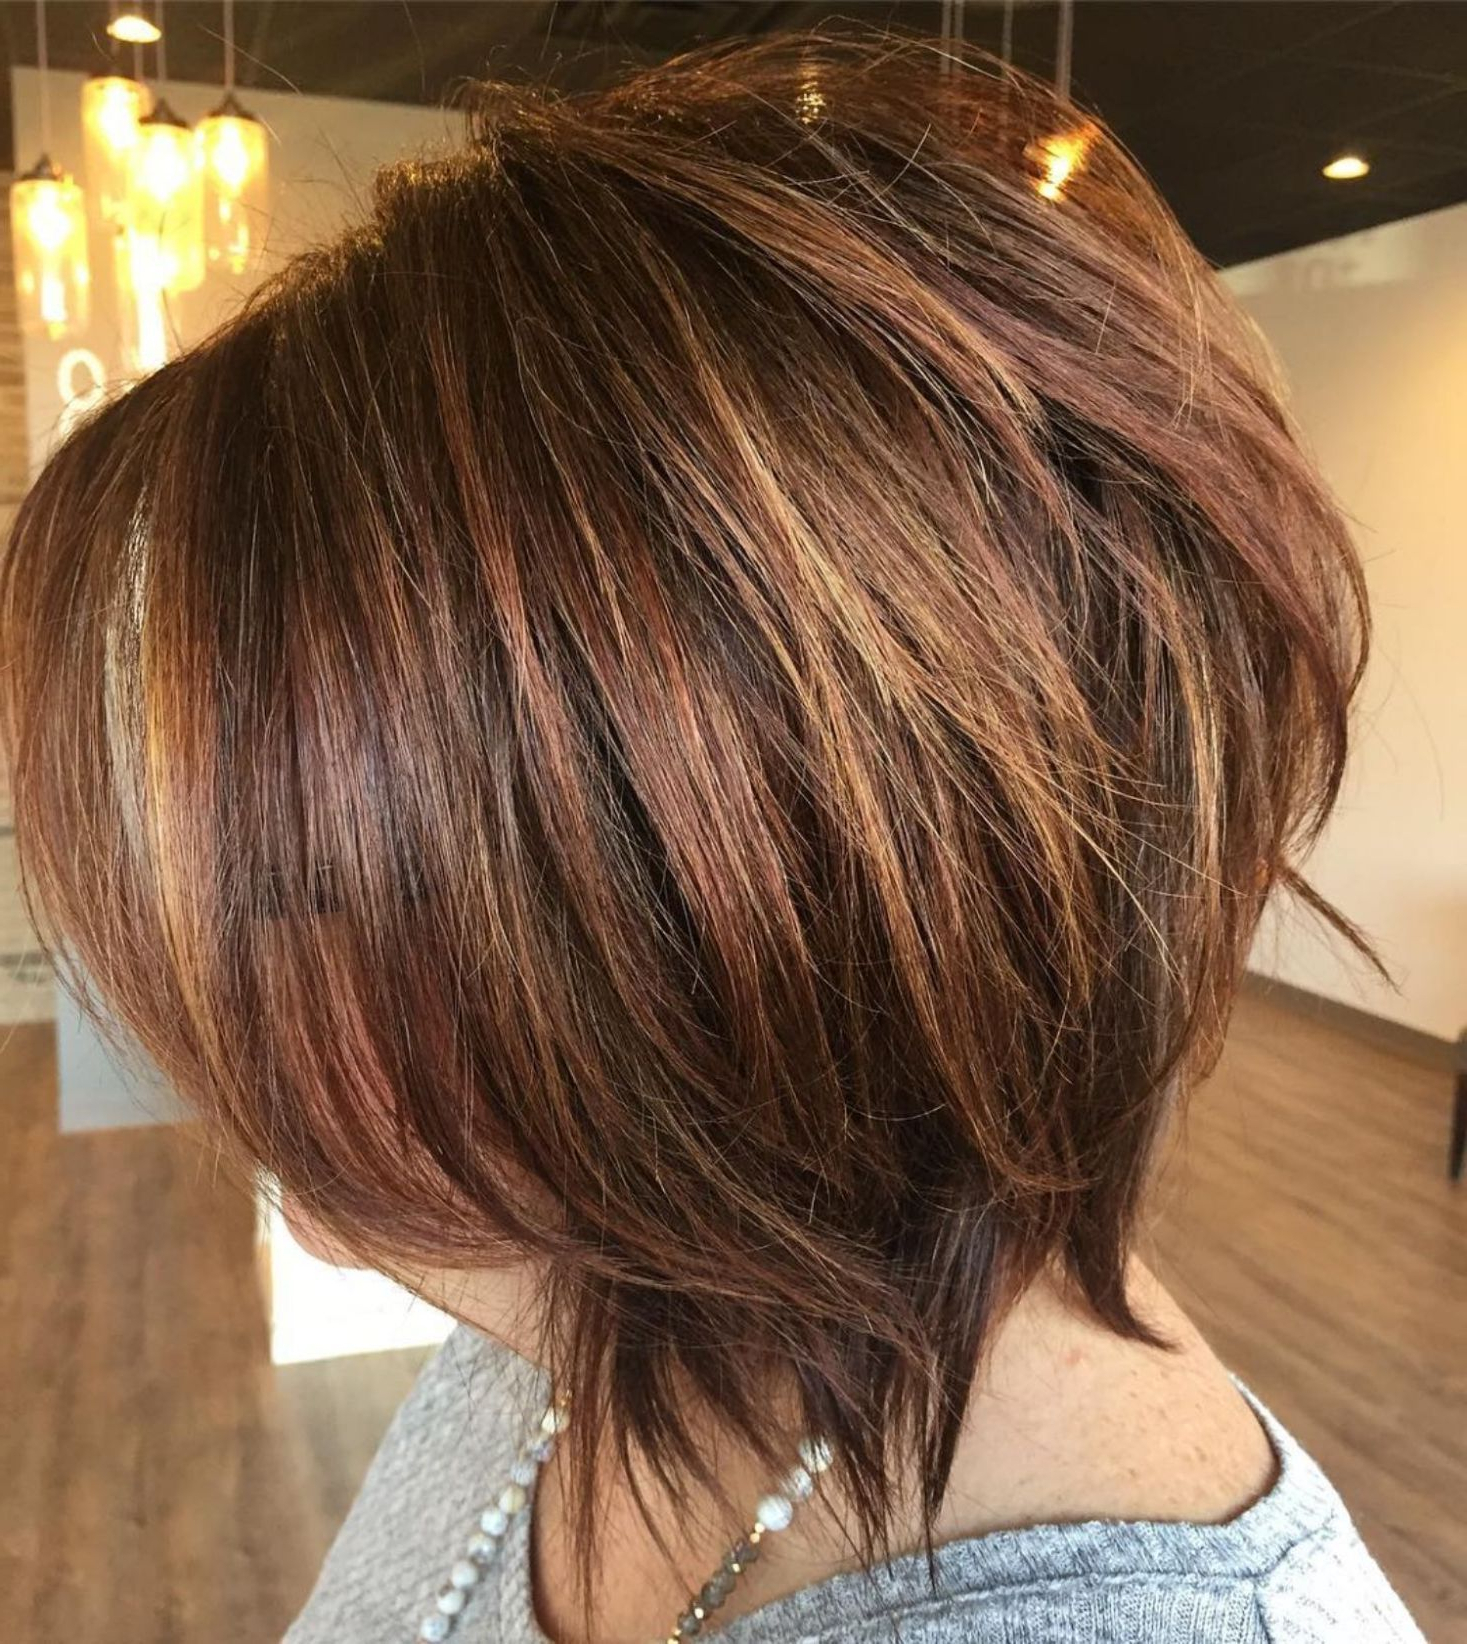 Pin On Beauty Regarding Current Razored Shaggy Chocolate And Caramel Bob Hairstyles (Gallery 7 of 20)